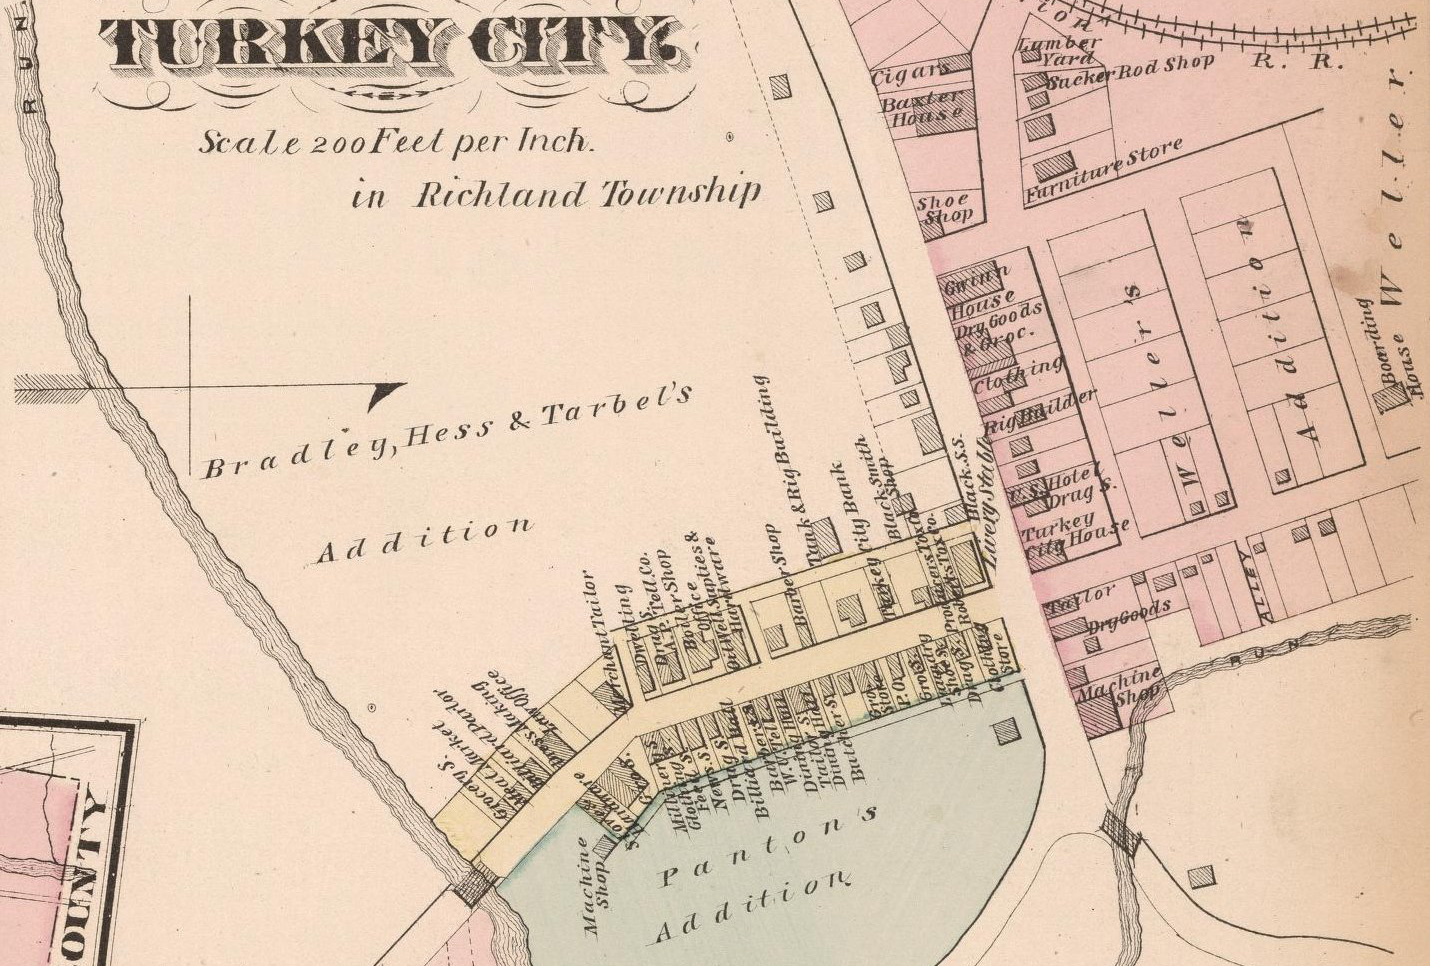 Closeup view of Turkey City in 1877